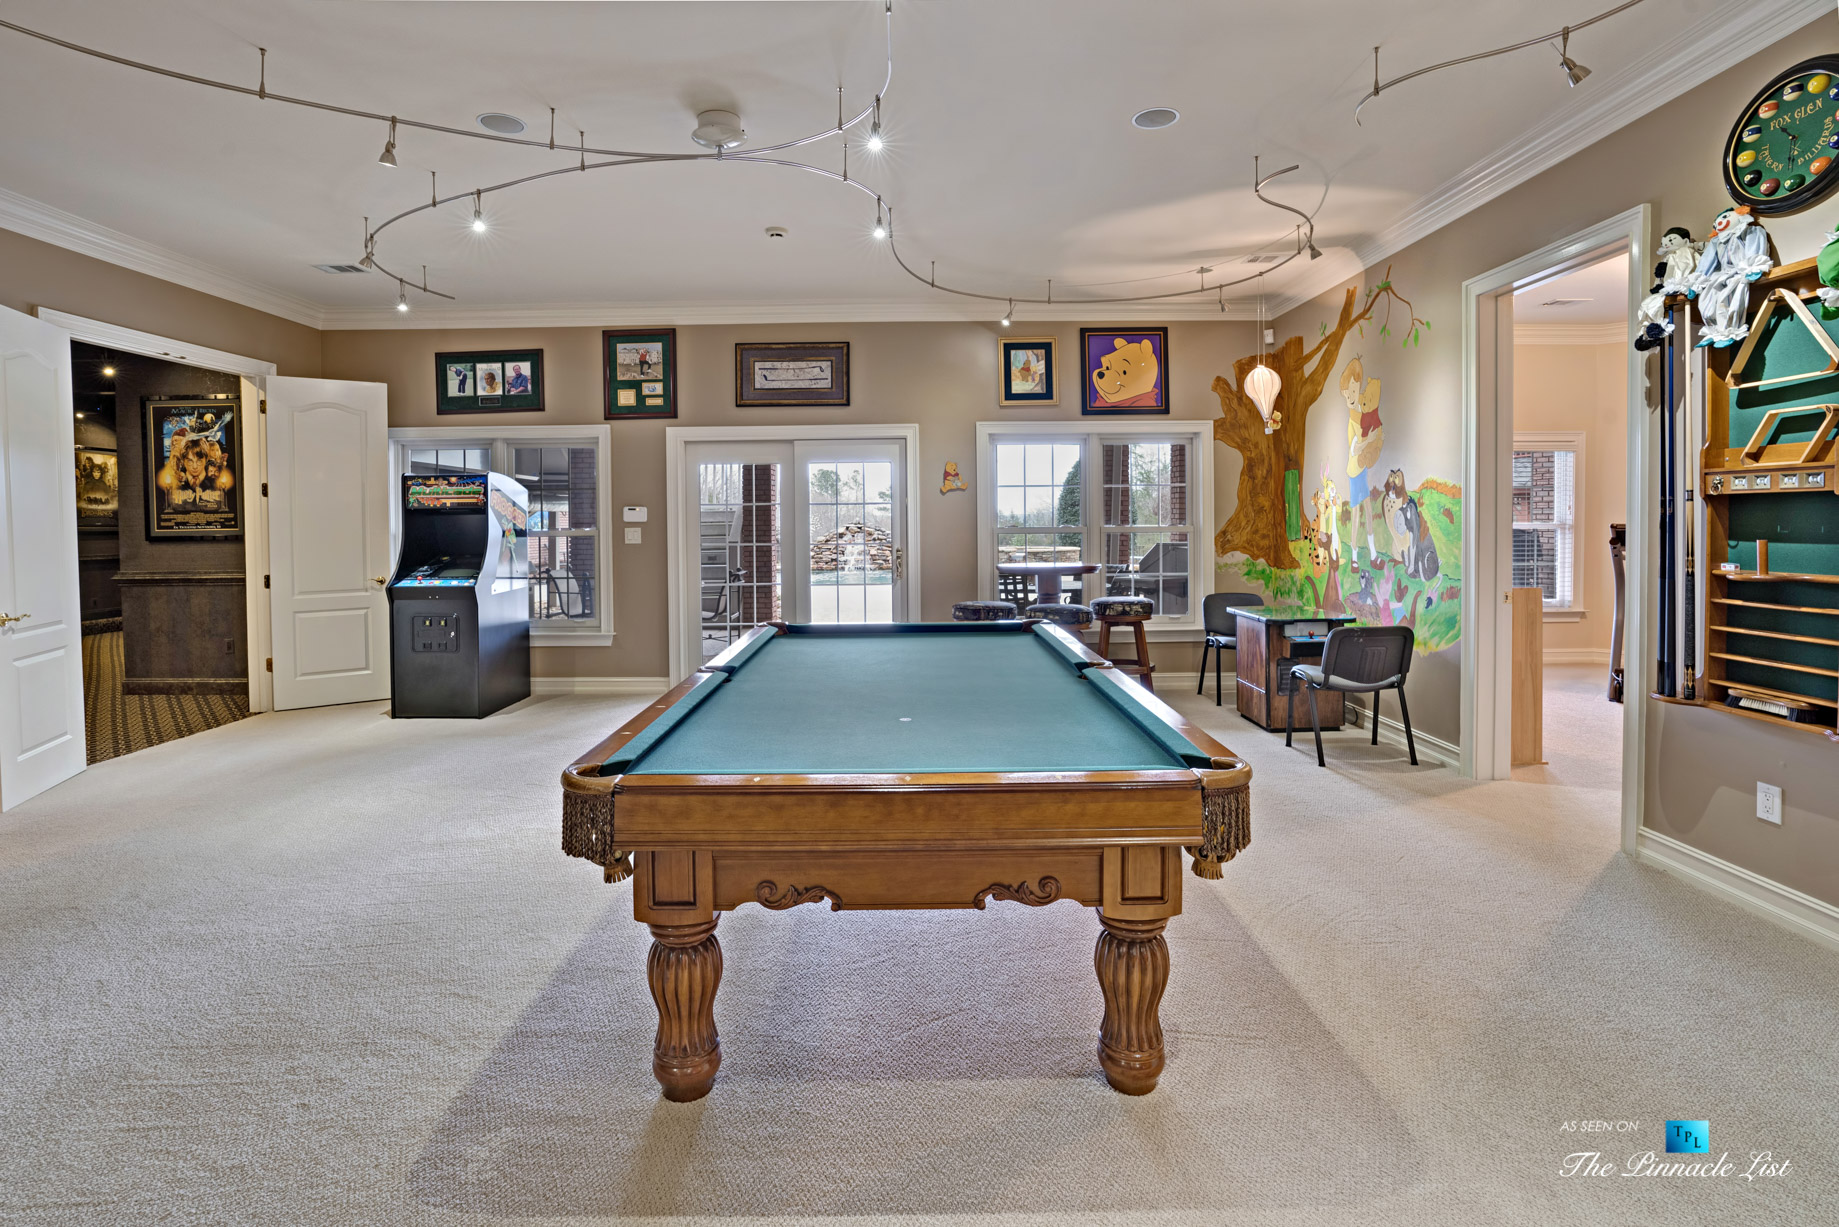 2219 Costley Mill Rd NE, Conyers, GA, USA – Entertainment Room Pool Table – Luxury Real Estate – Equestrian Country Home